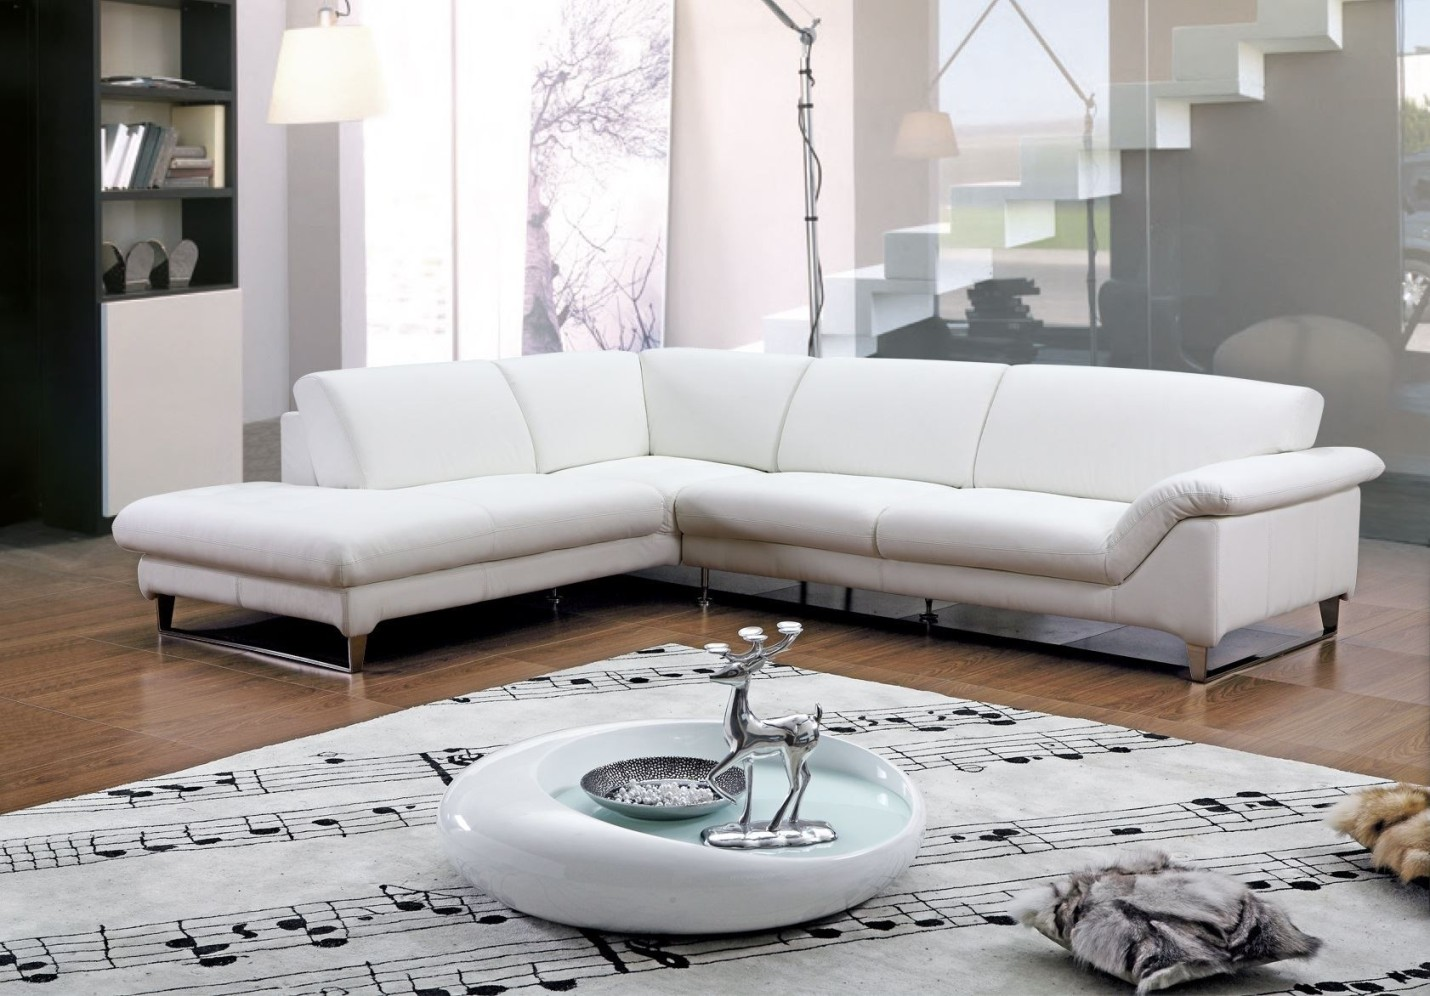 2021 trendiest colors for adorable leather sofas in elegant homes